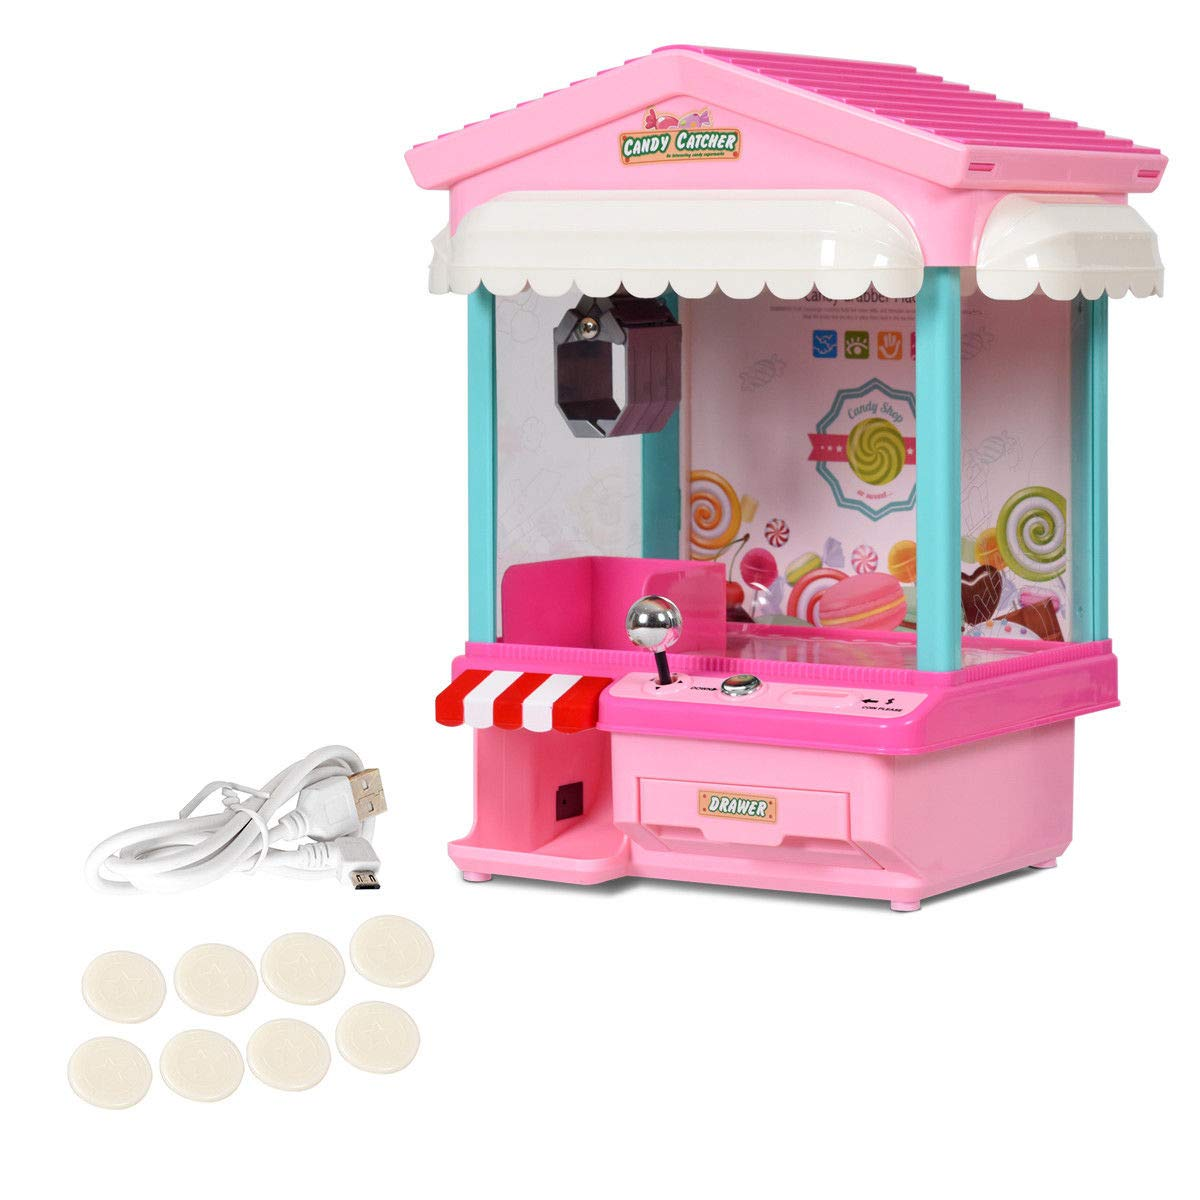 Snow Shop Everything Kids Electronic Claw Toy Grabber Machine Home Arcade w/ Lights & Music & Coins by Snow Shop Everything (Image #3)